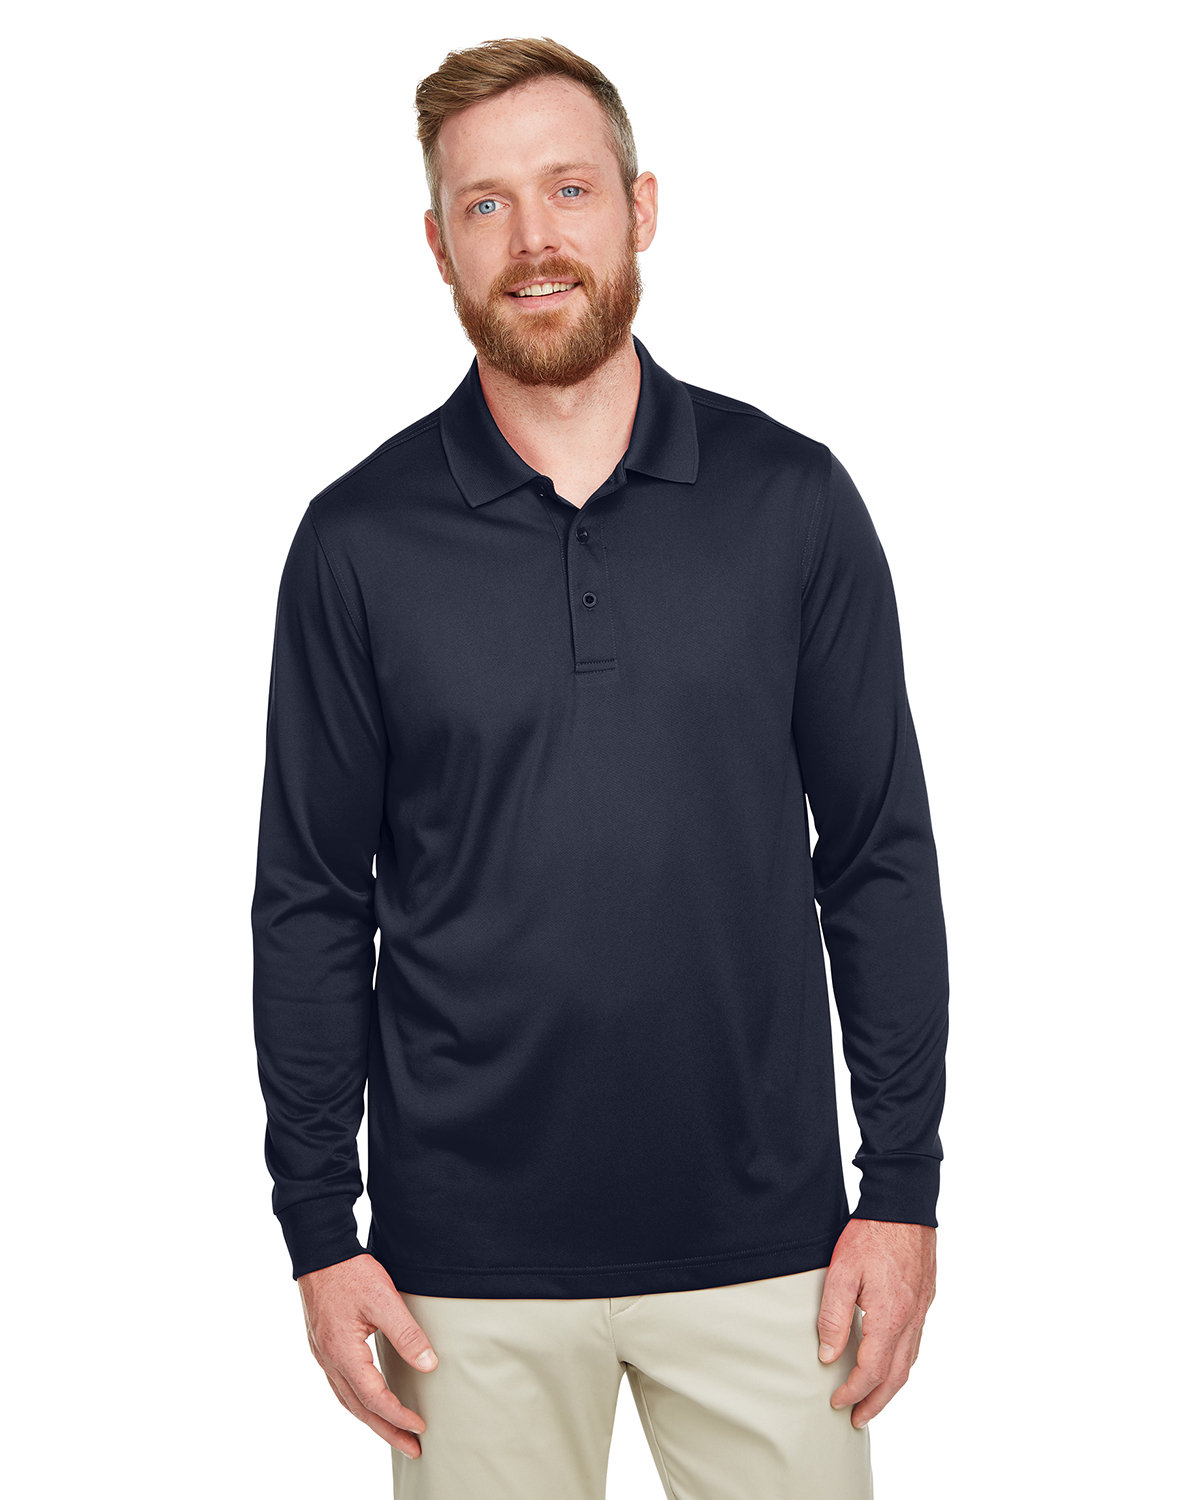 Harriton Men's Tall Advantage Long Sleeve Snag Protection Plus IL Polo DARK NAVY